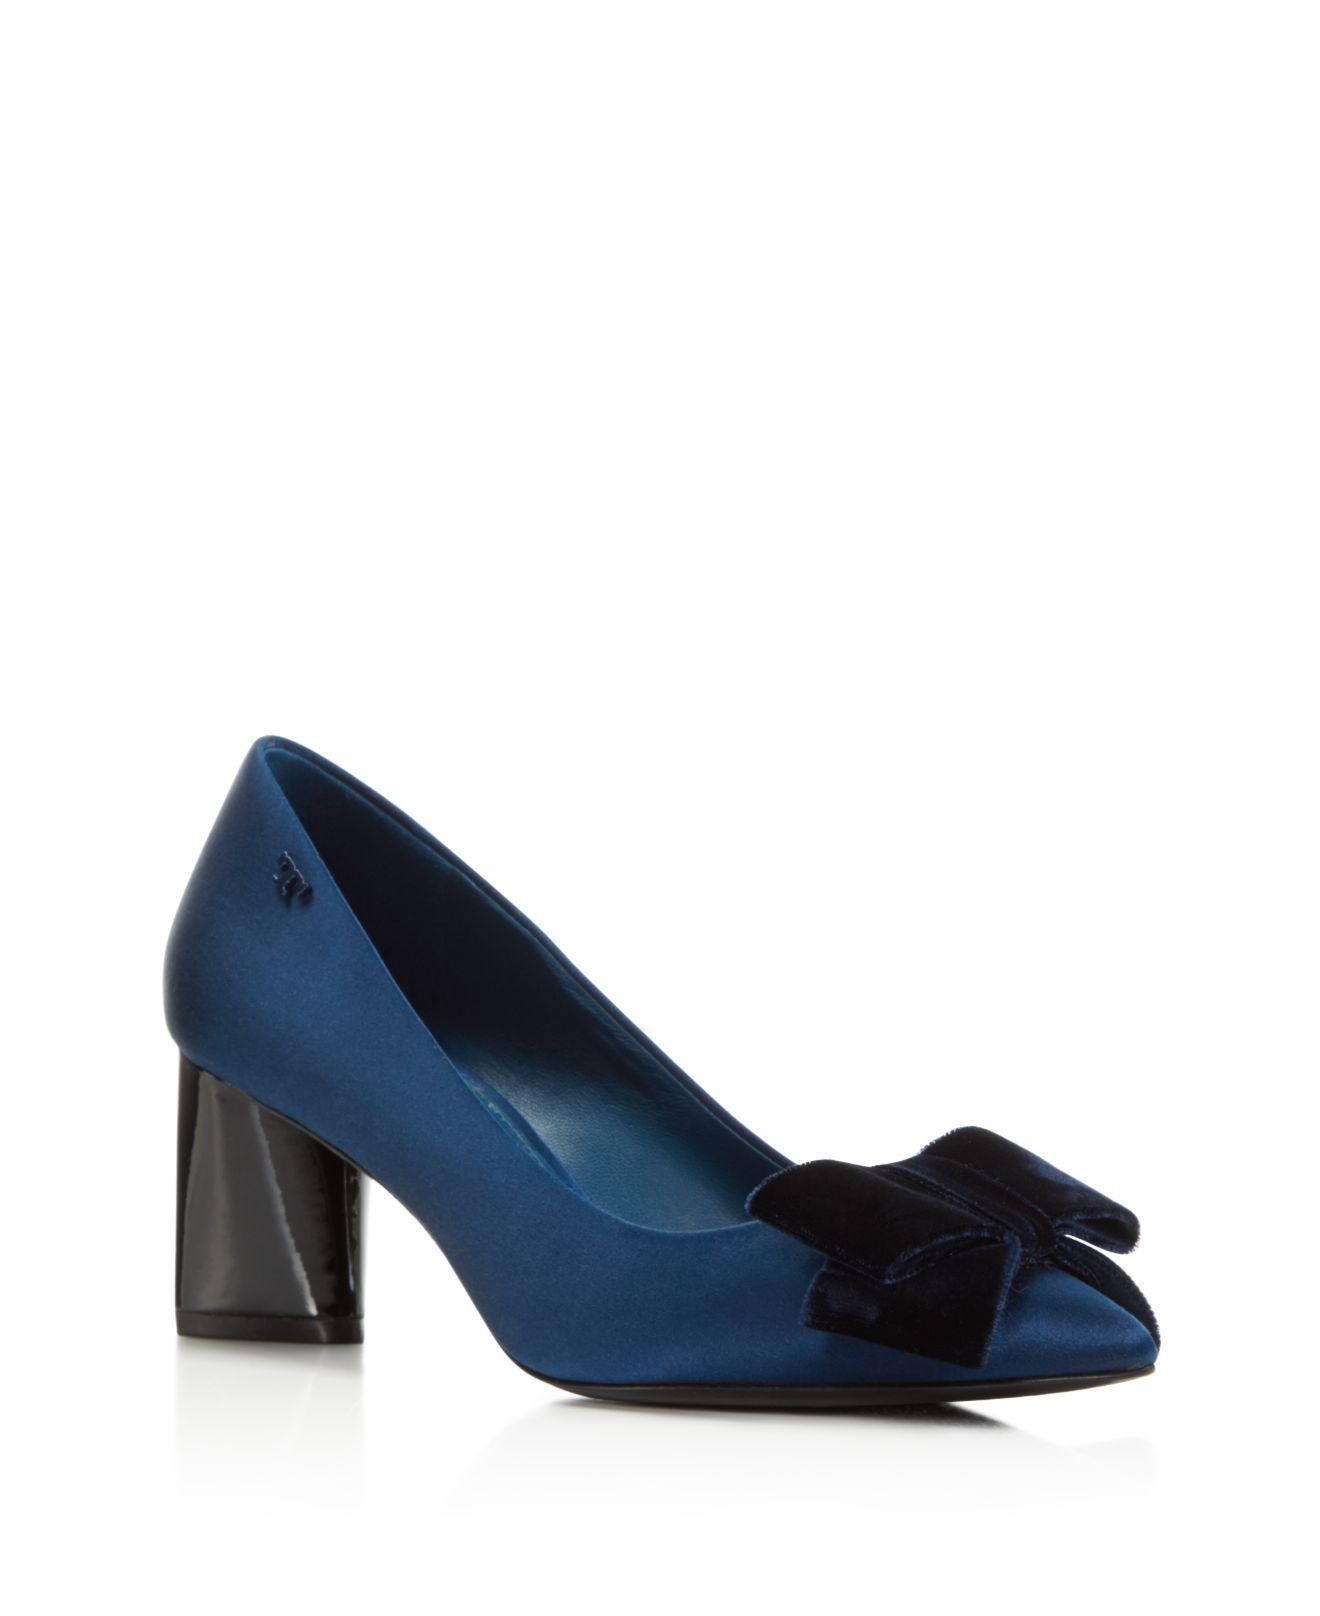 Pumps & High Heels for Women On Sale, Royal Navy Blue, Suede leather, 2017, 7.5 Tory Burch